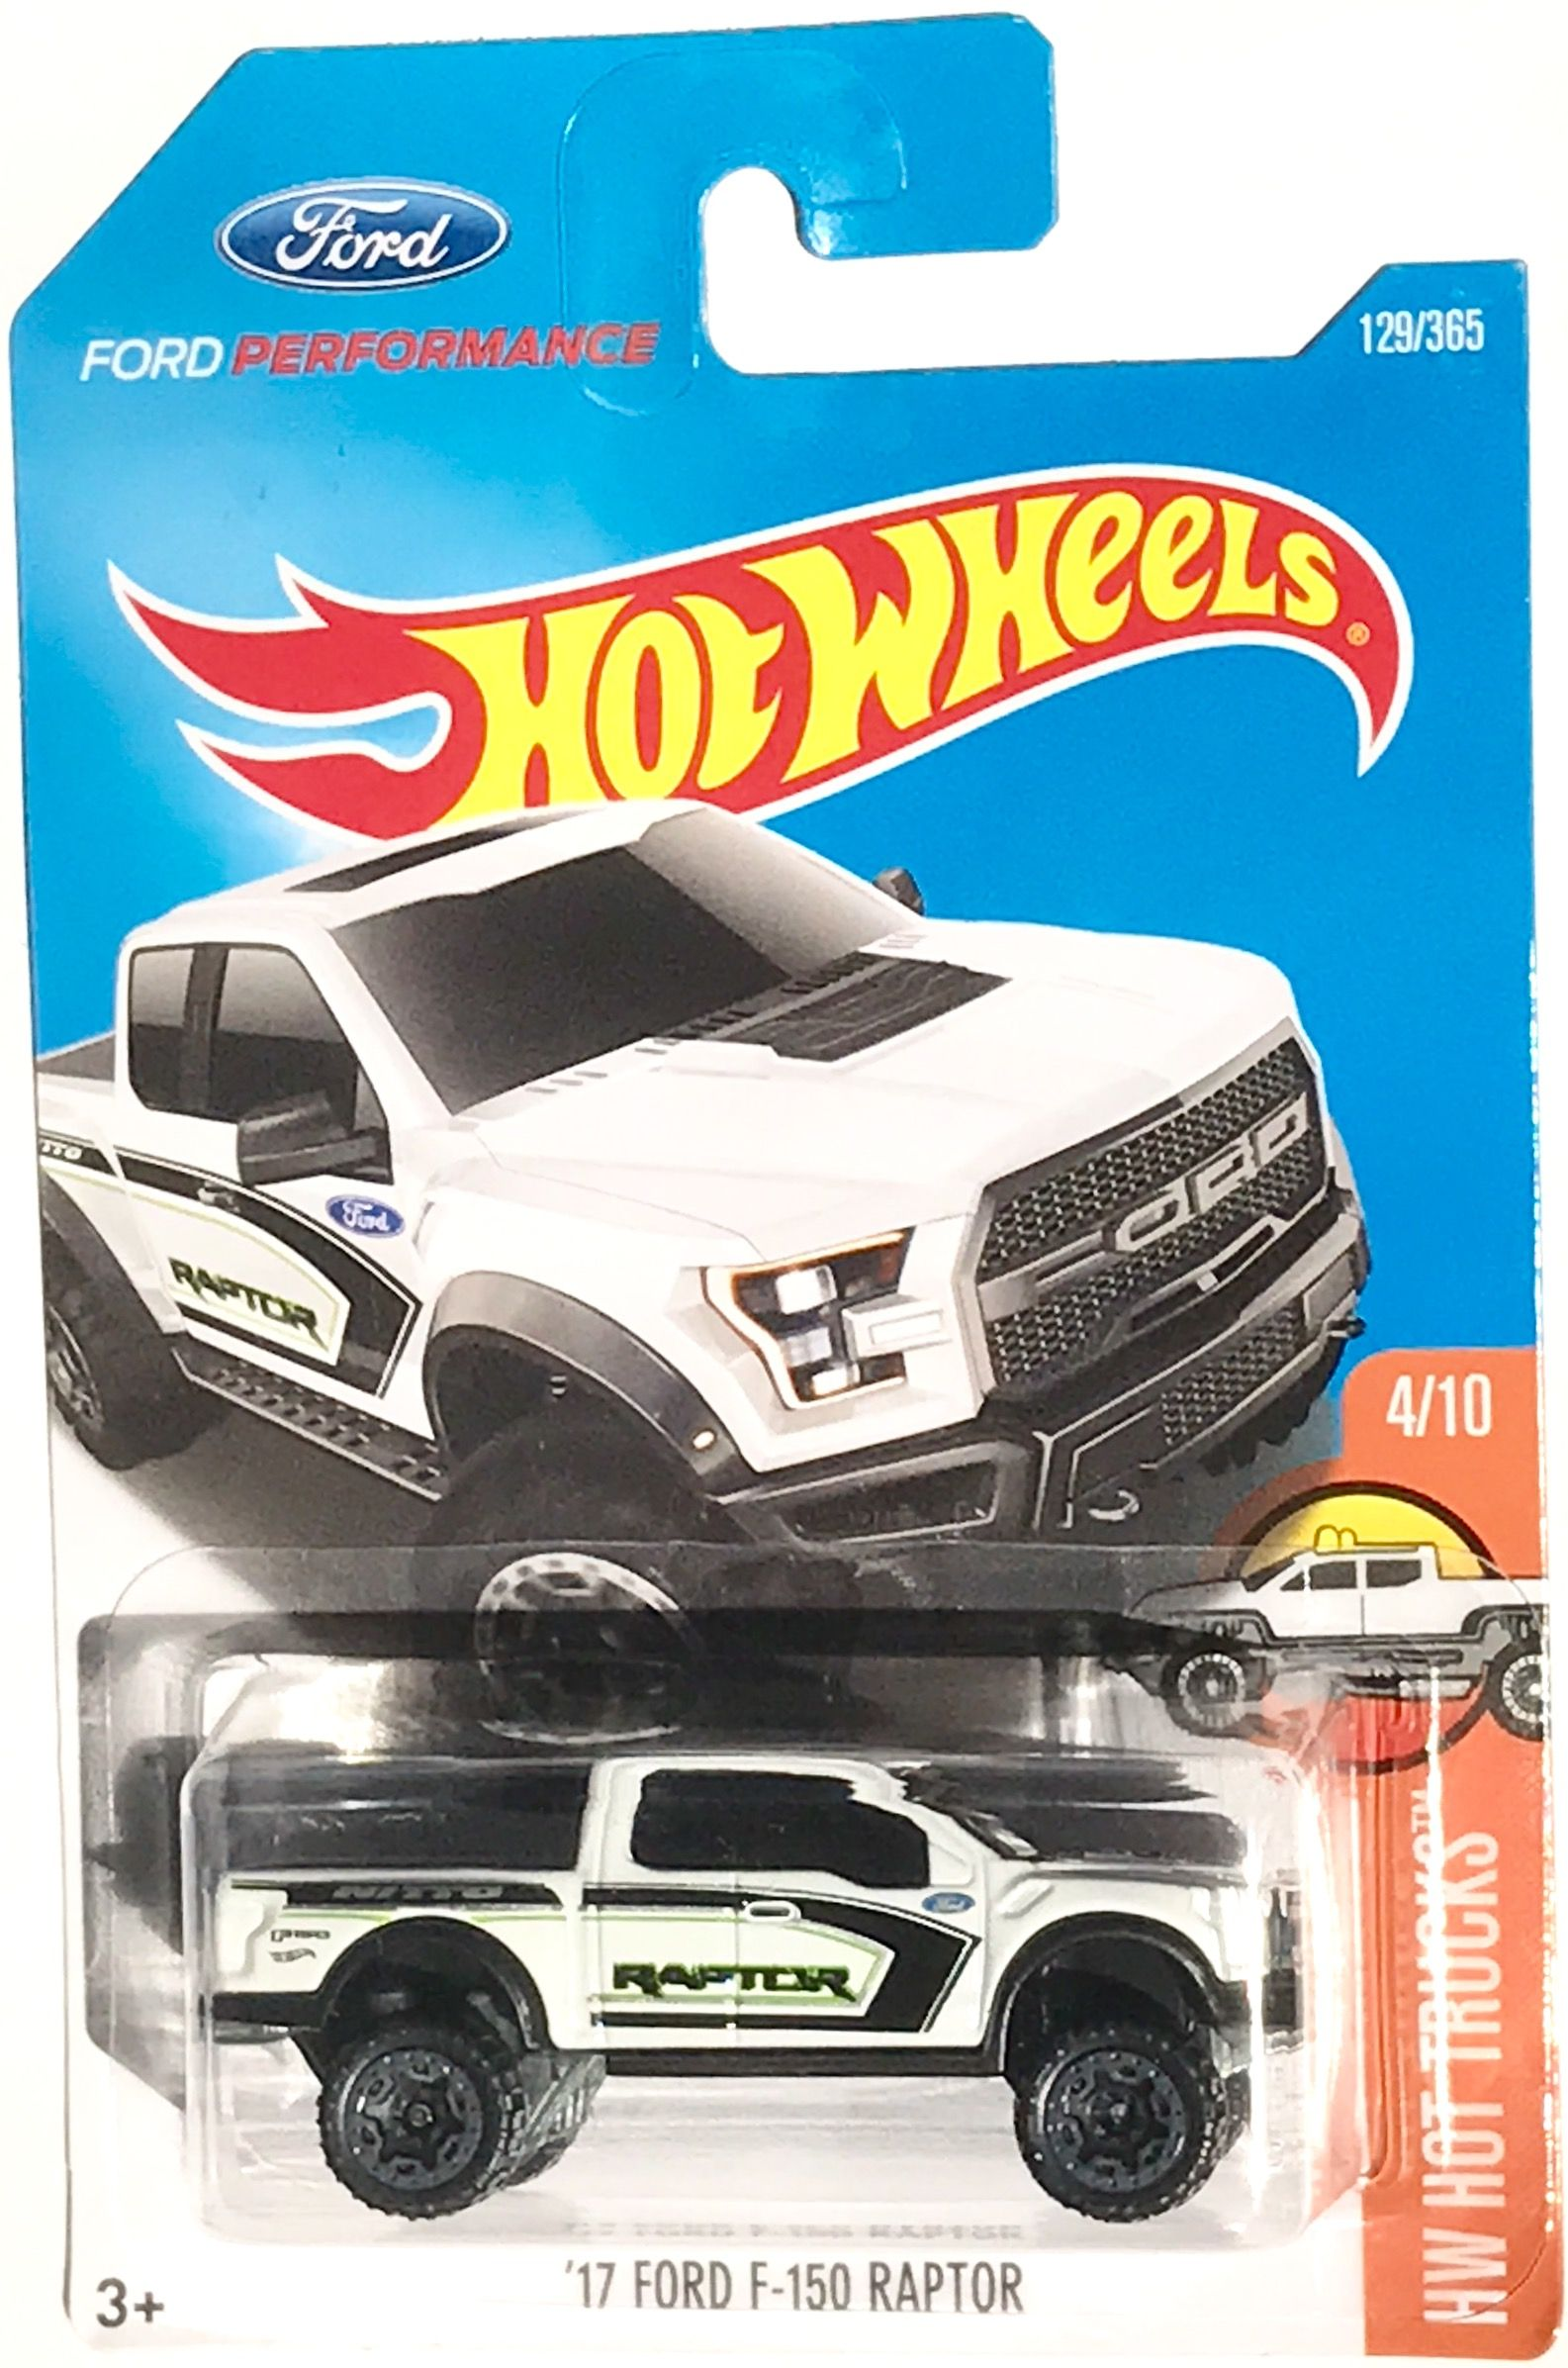 164 hot wheels hw hot trucks 17 ford f 150 raptor 410 164 hot wheels hw hot trucks 17 ford f 150 raptor voltagebd Images